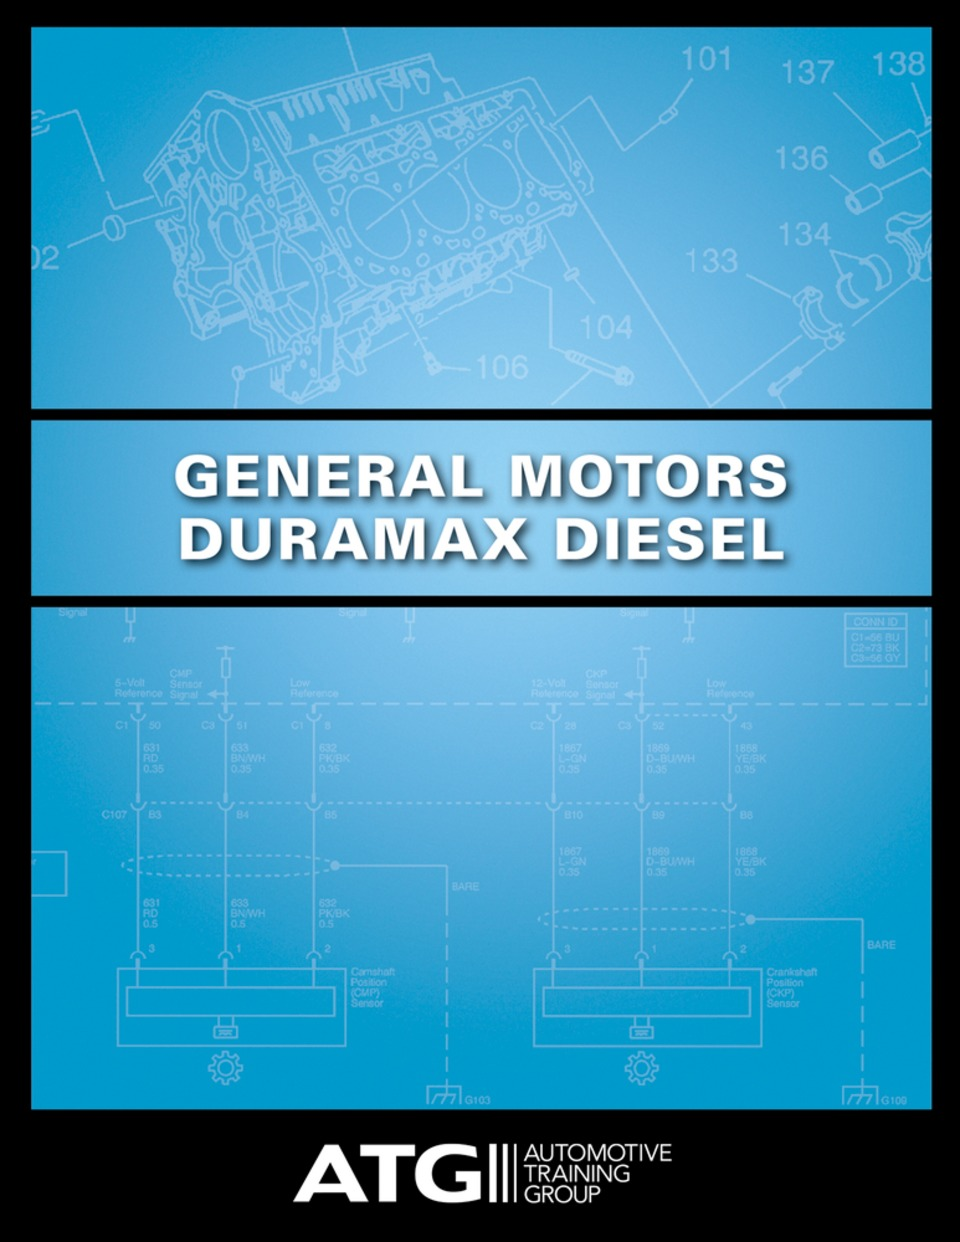 Duramax Manual Fuse And Circuit Breaker Pullers Vehicleserviceproscom Vehicleservicepros Com Gm Diesel5c0n5rzt6hfhy